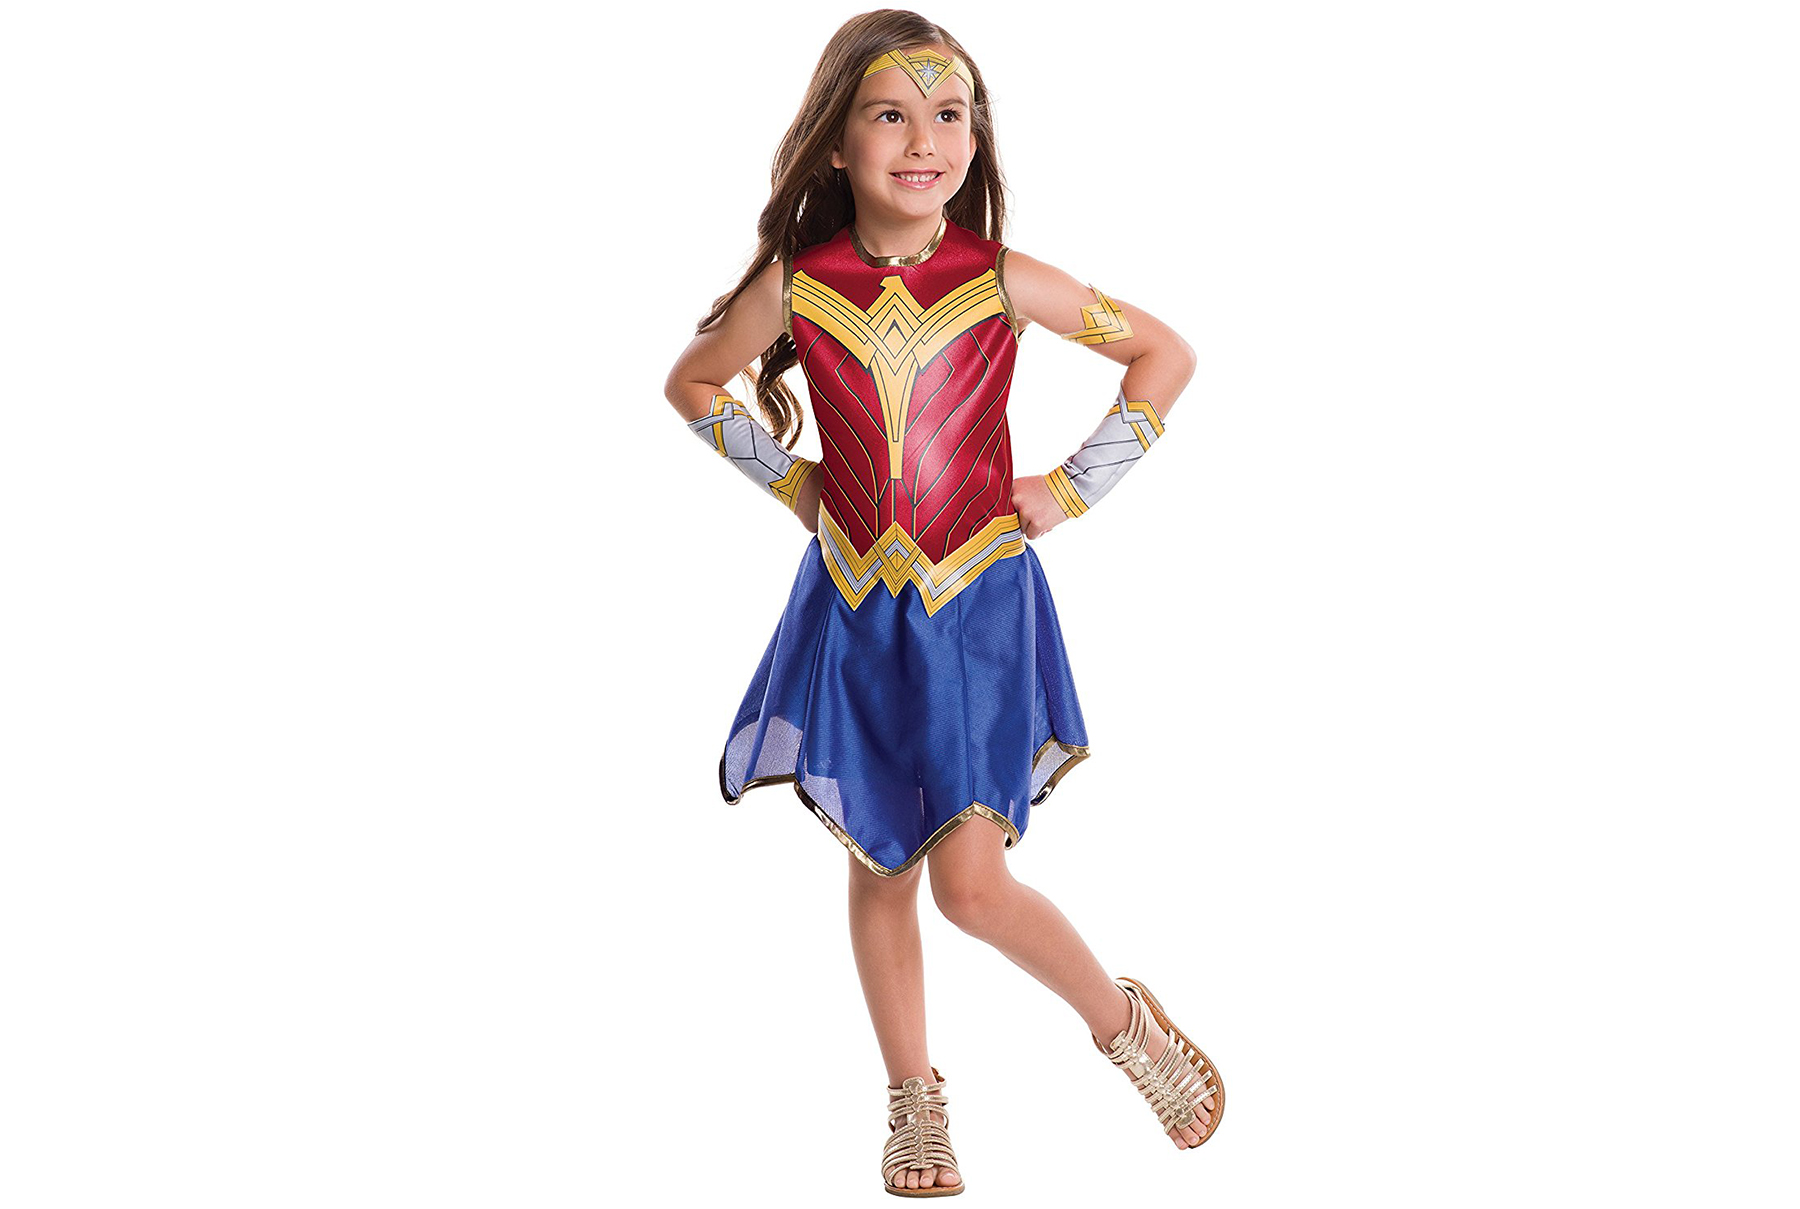 wonder woman costume - Best Site For Halloween Costumes